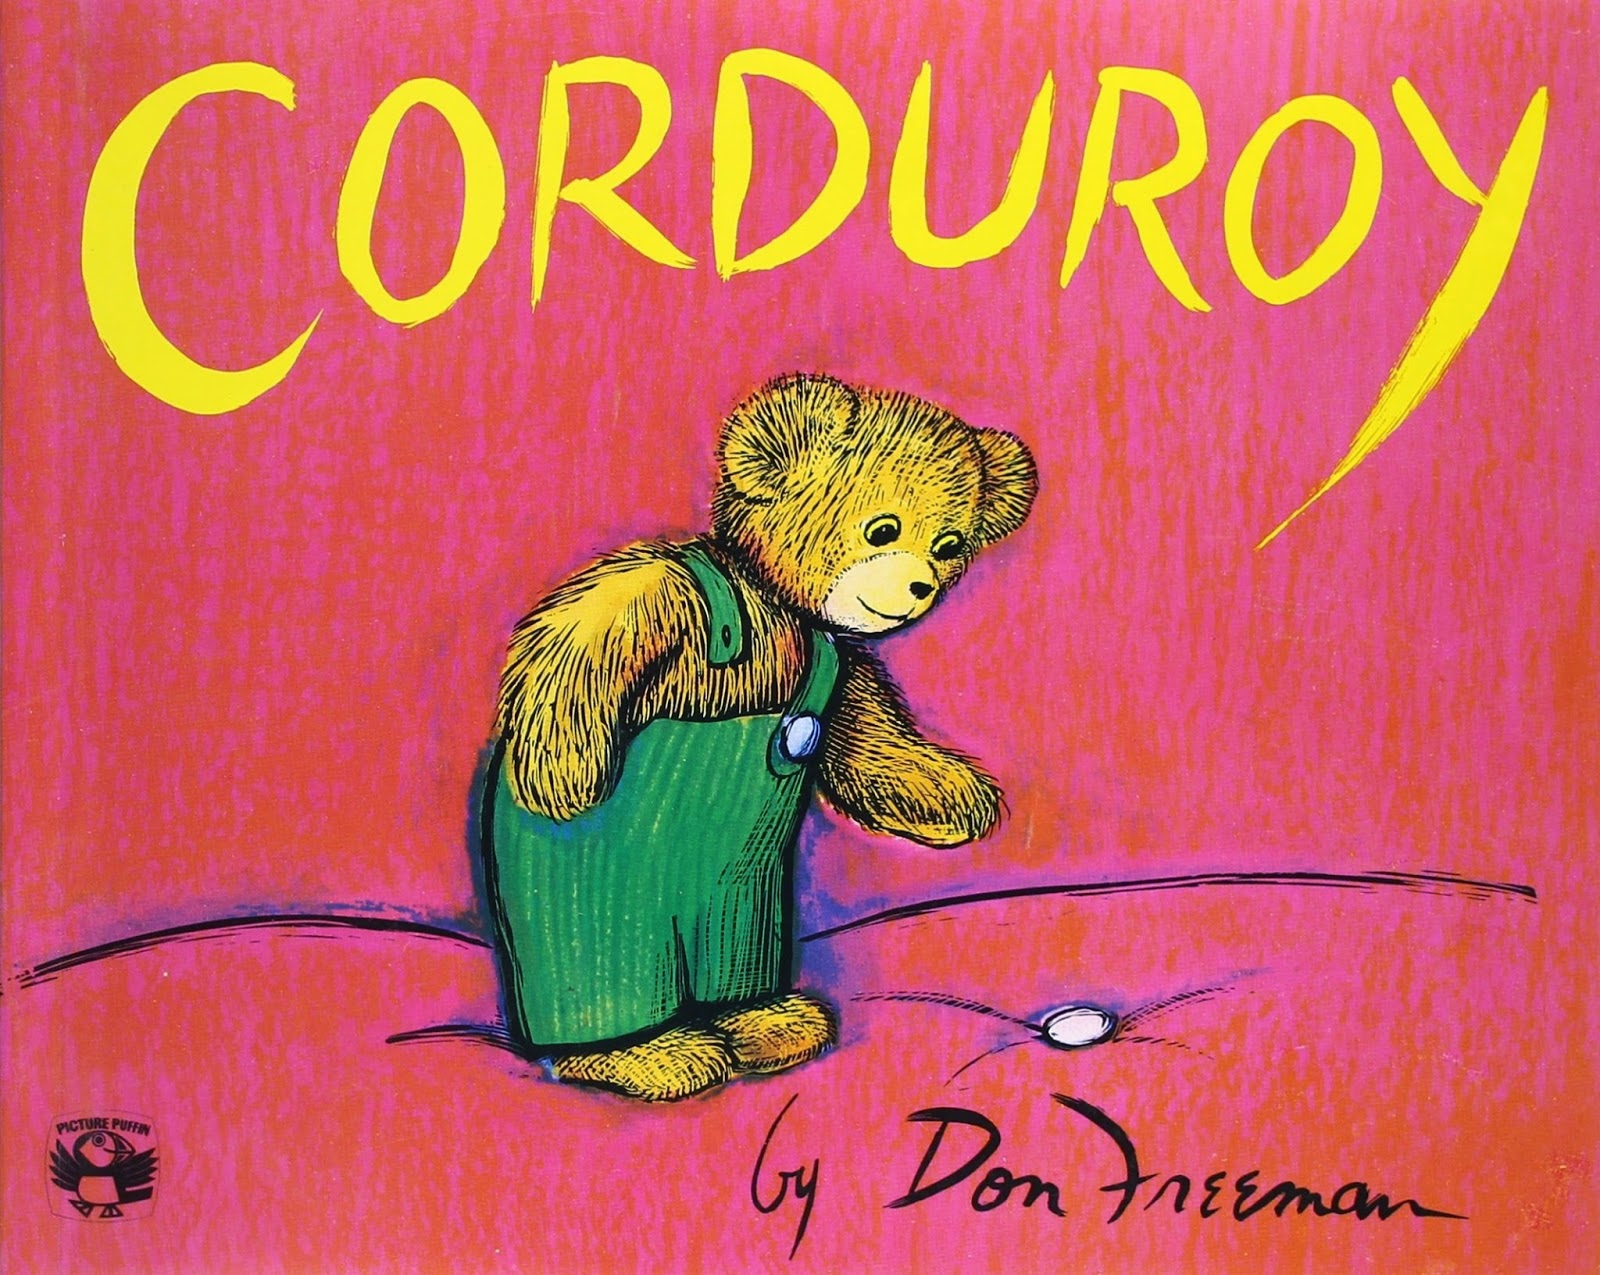 Corduroy on Books about bears- children's book review list.